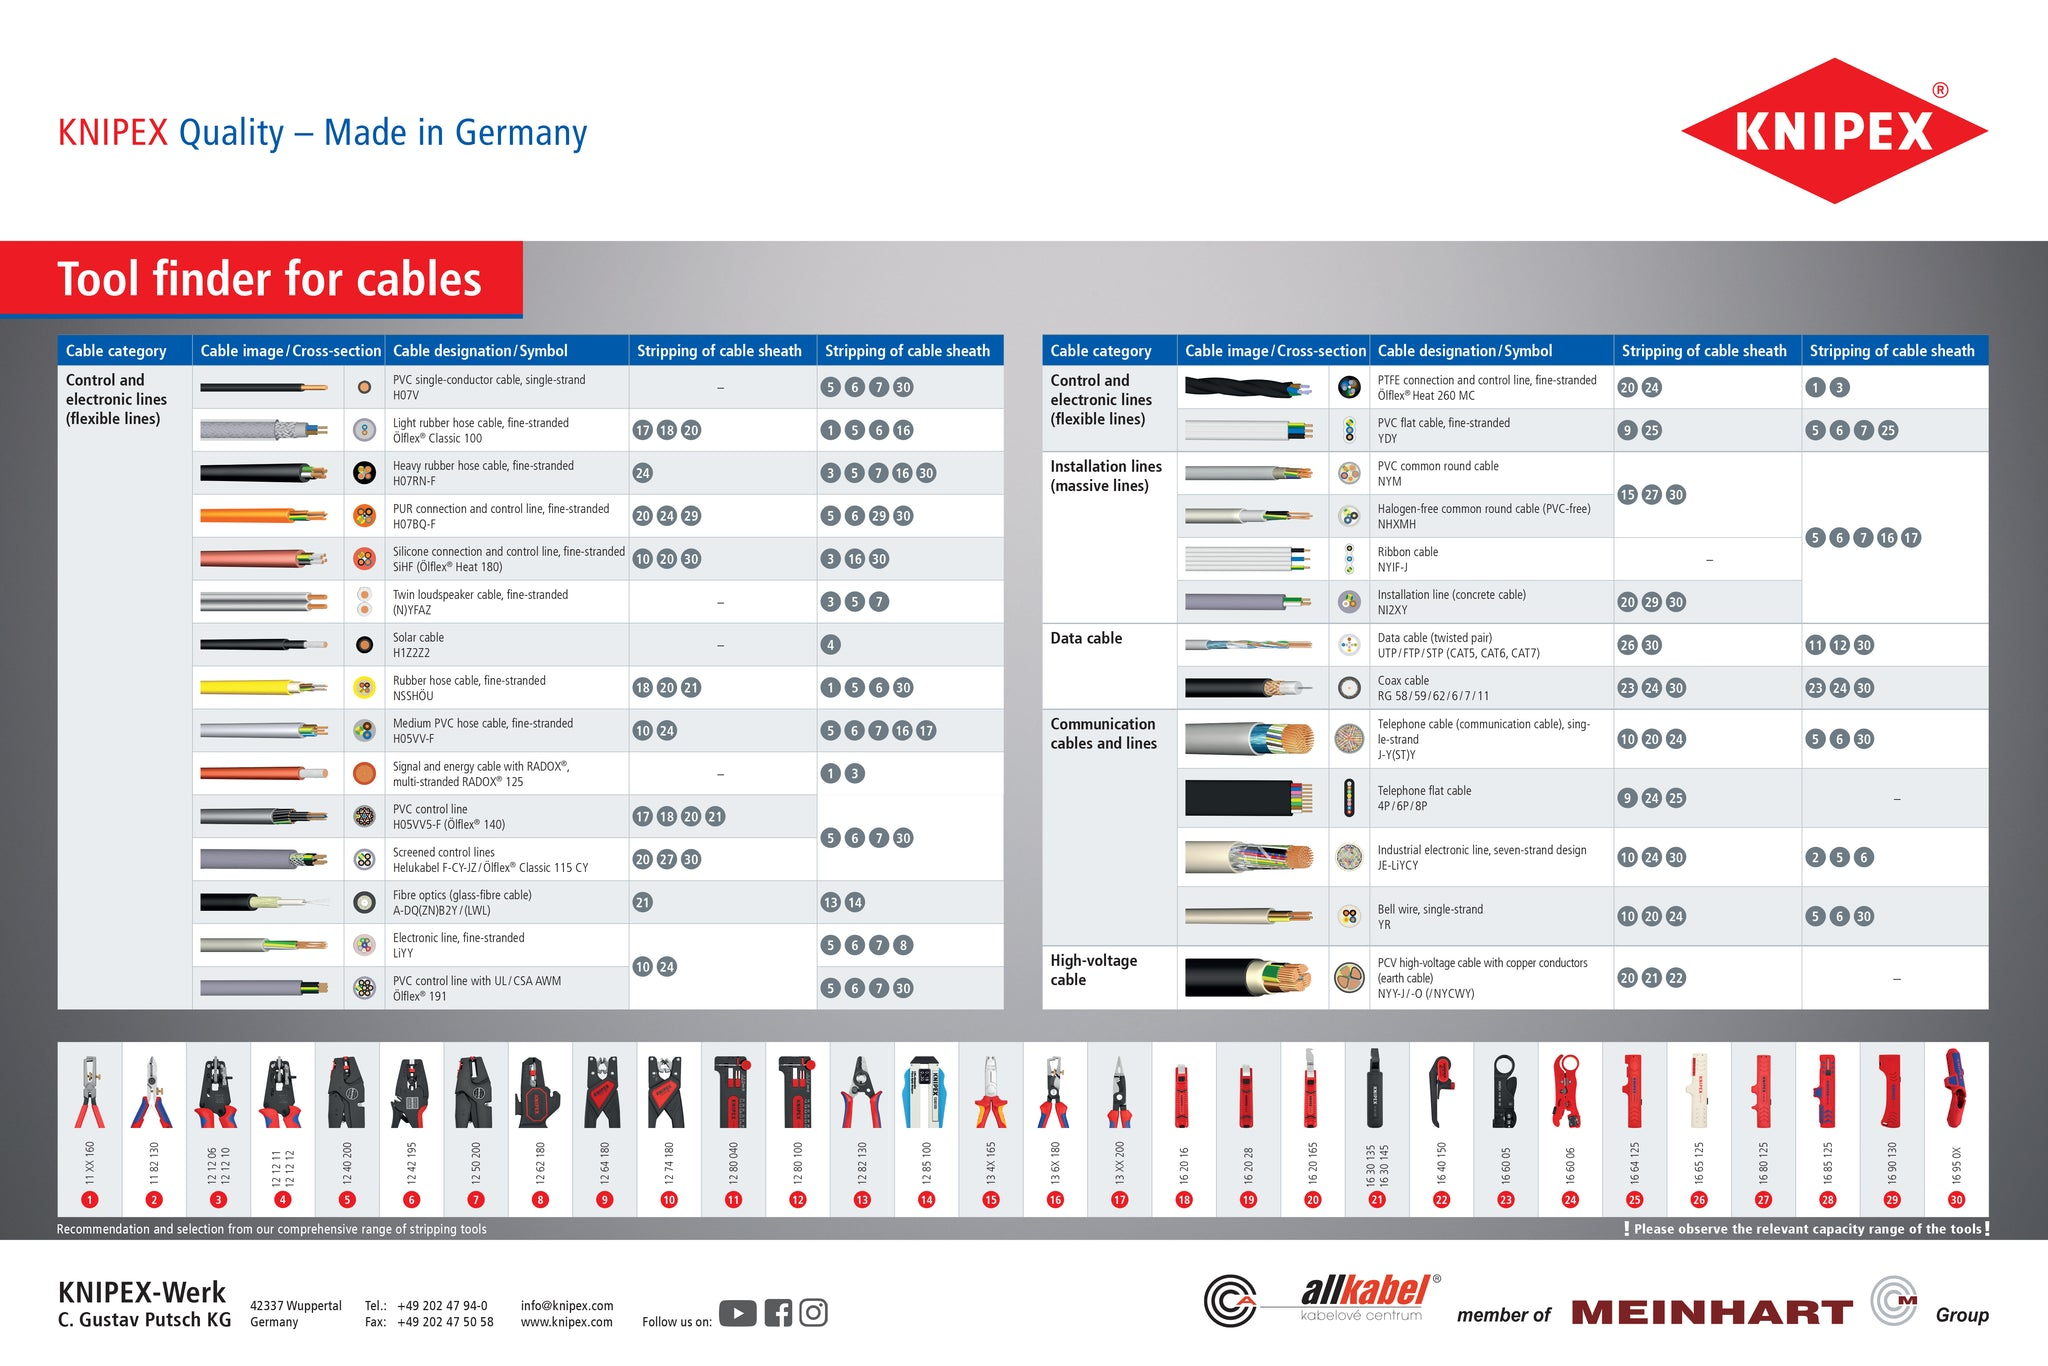 Knipex Tool Finder